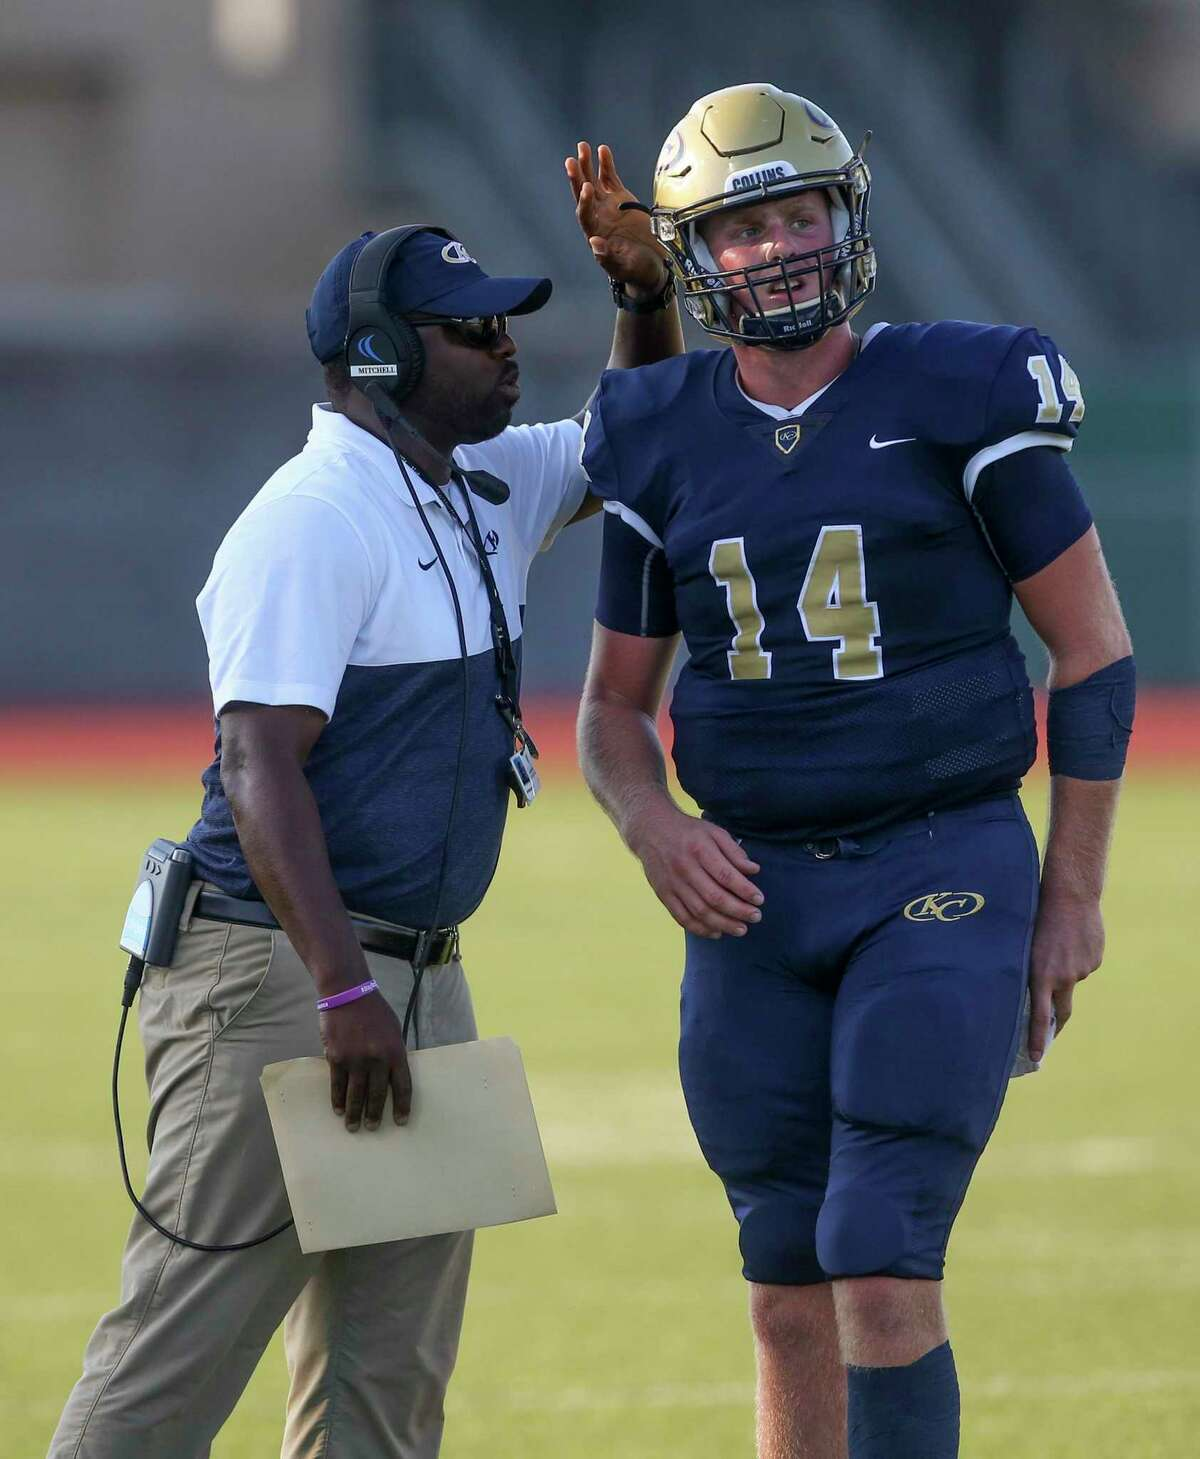 Klein Collins head football coach Adrian Mitchell talks to quarterback Colby Powers (14) while playing against Clear Springs in the second quarter at Memorial Stadium on September 7, 2019 in Spring, TX.